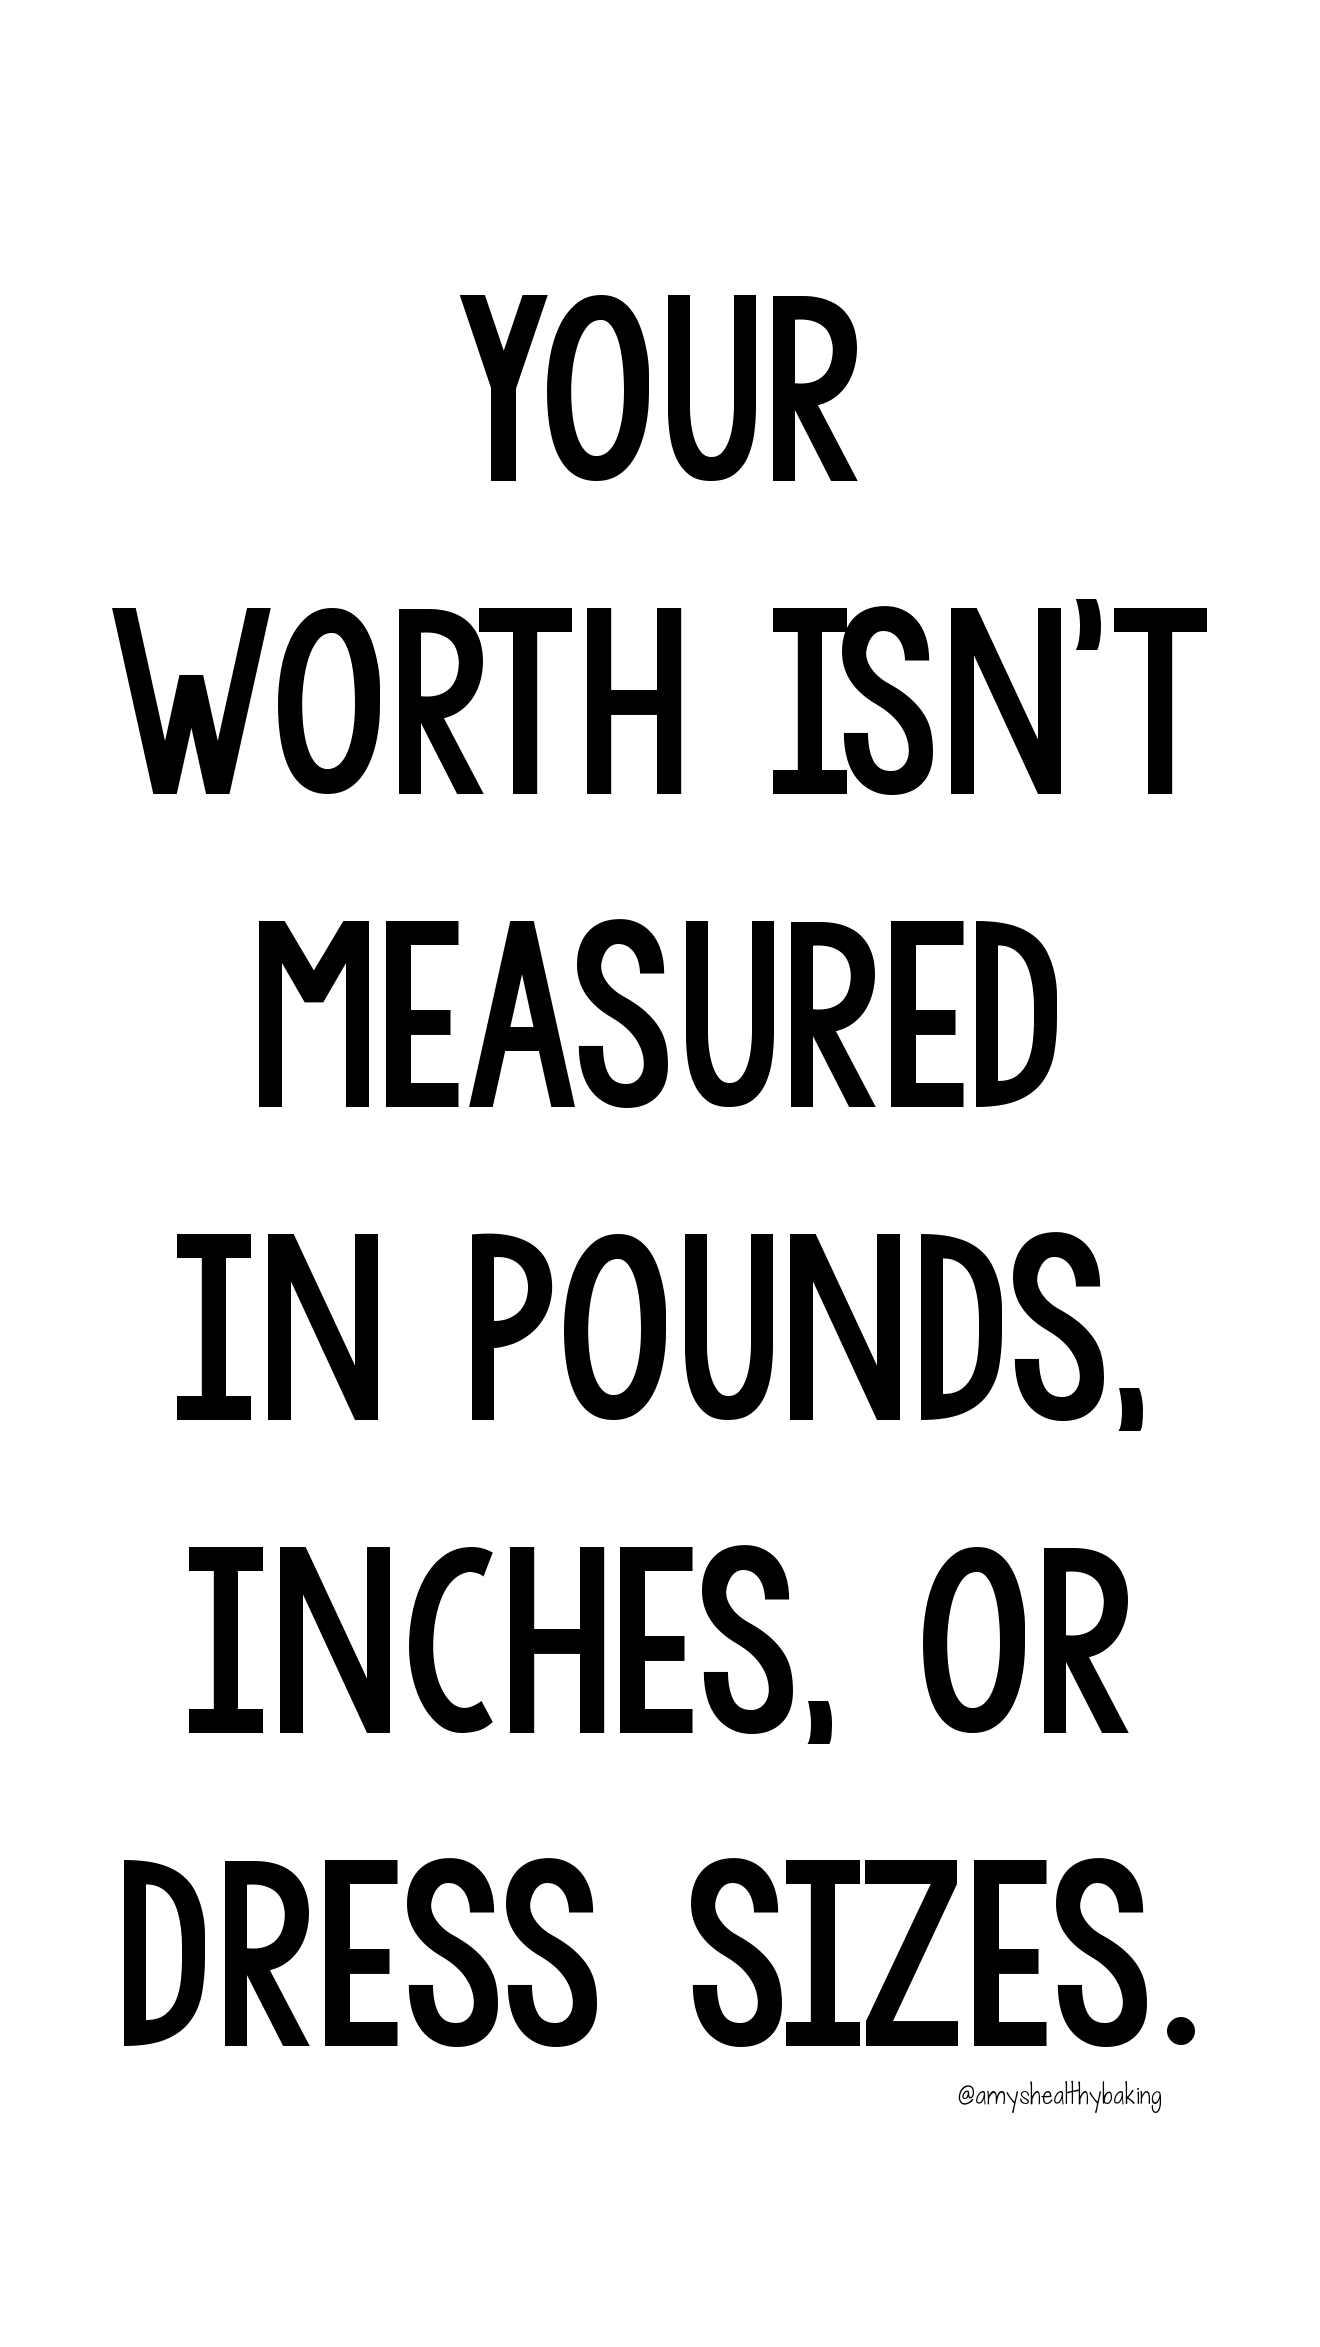 Your worth isn't measured in pounds, inches, or dress sizes. | Amy's Healthy Baking